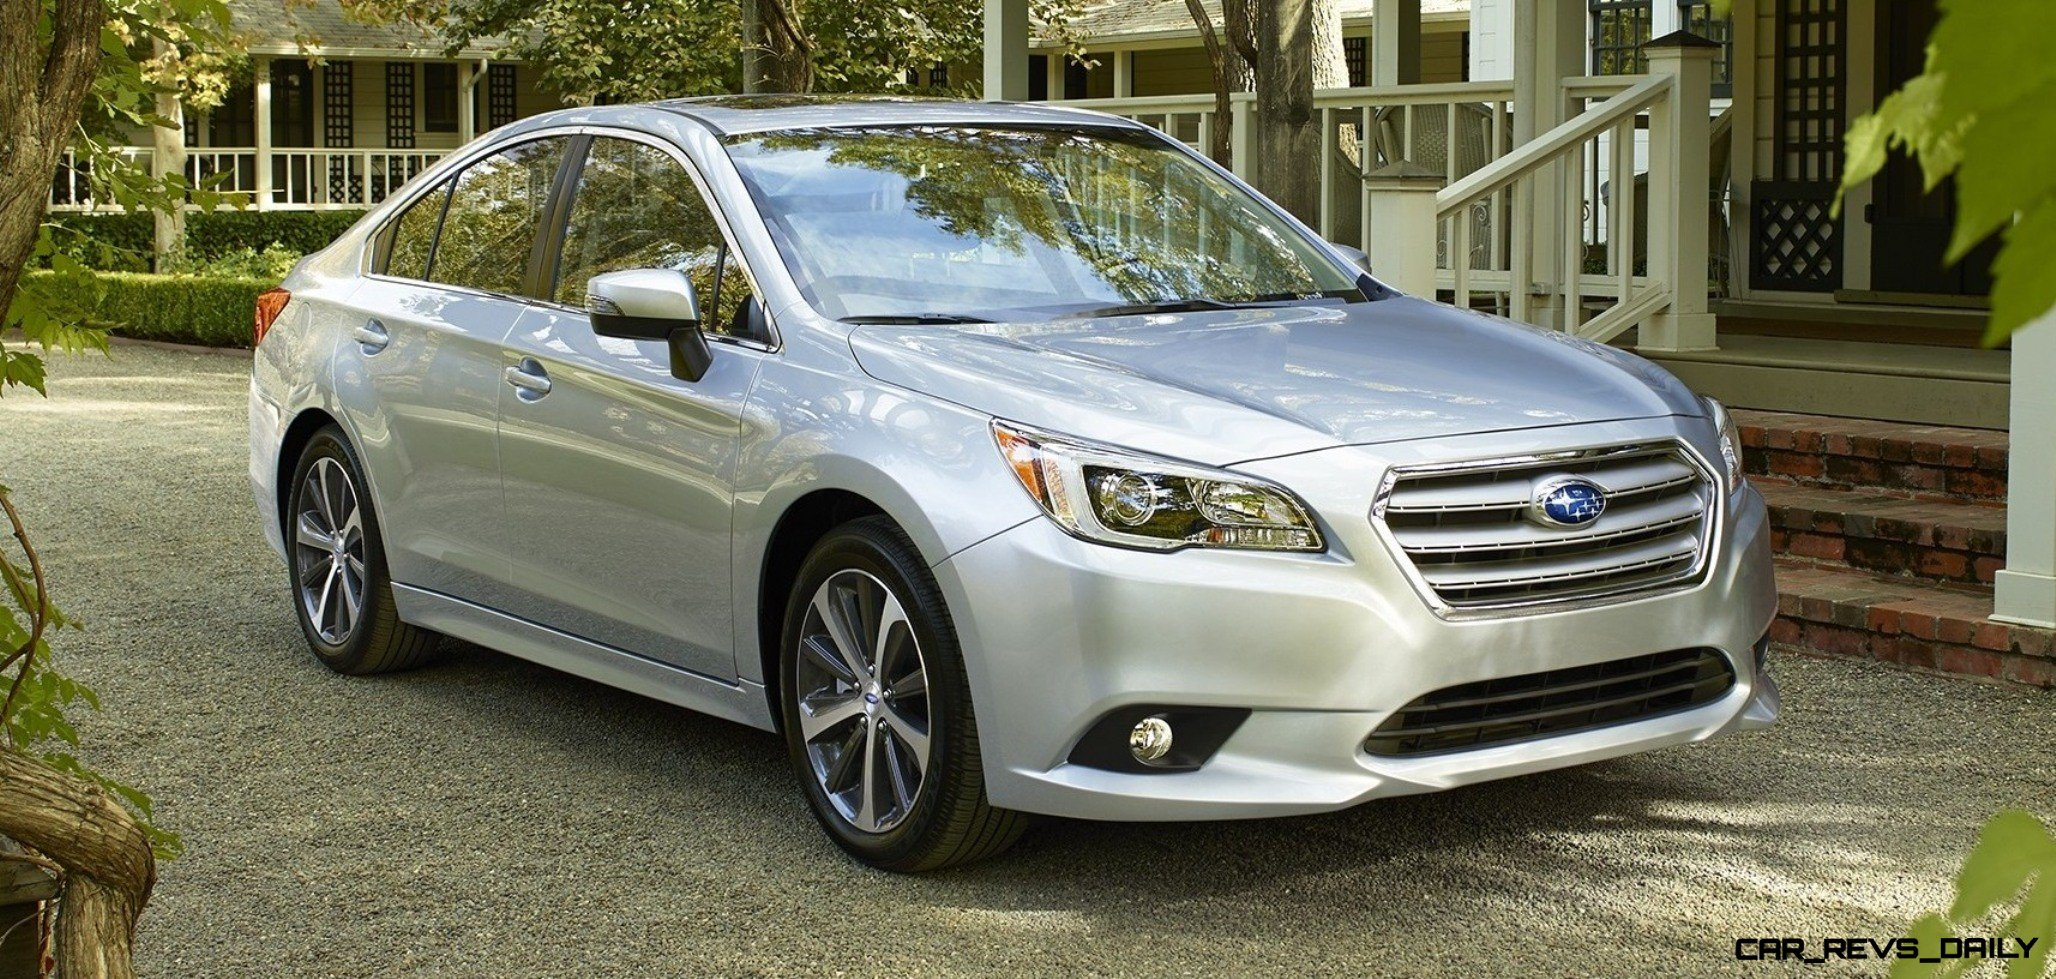 2015 subaru legacy and 3 6r sedans much quieter far more tech inside finally some. Black Bedroom Furniture Sets. Home Design Ideas